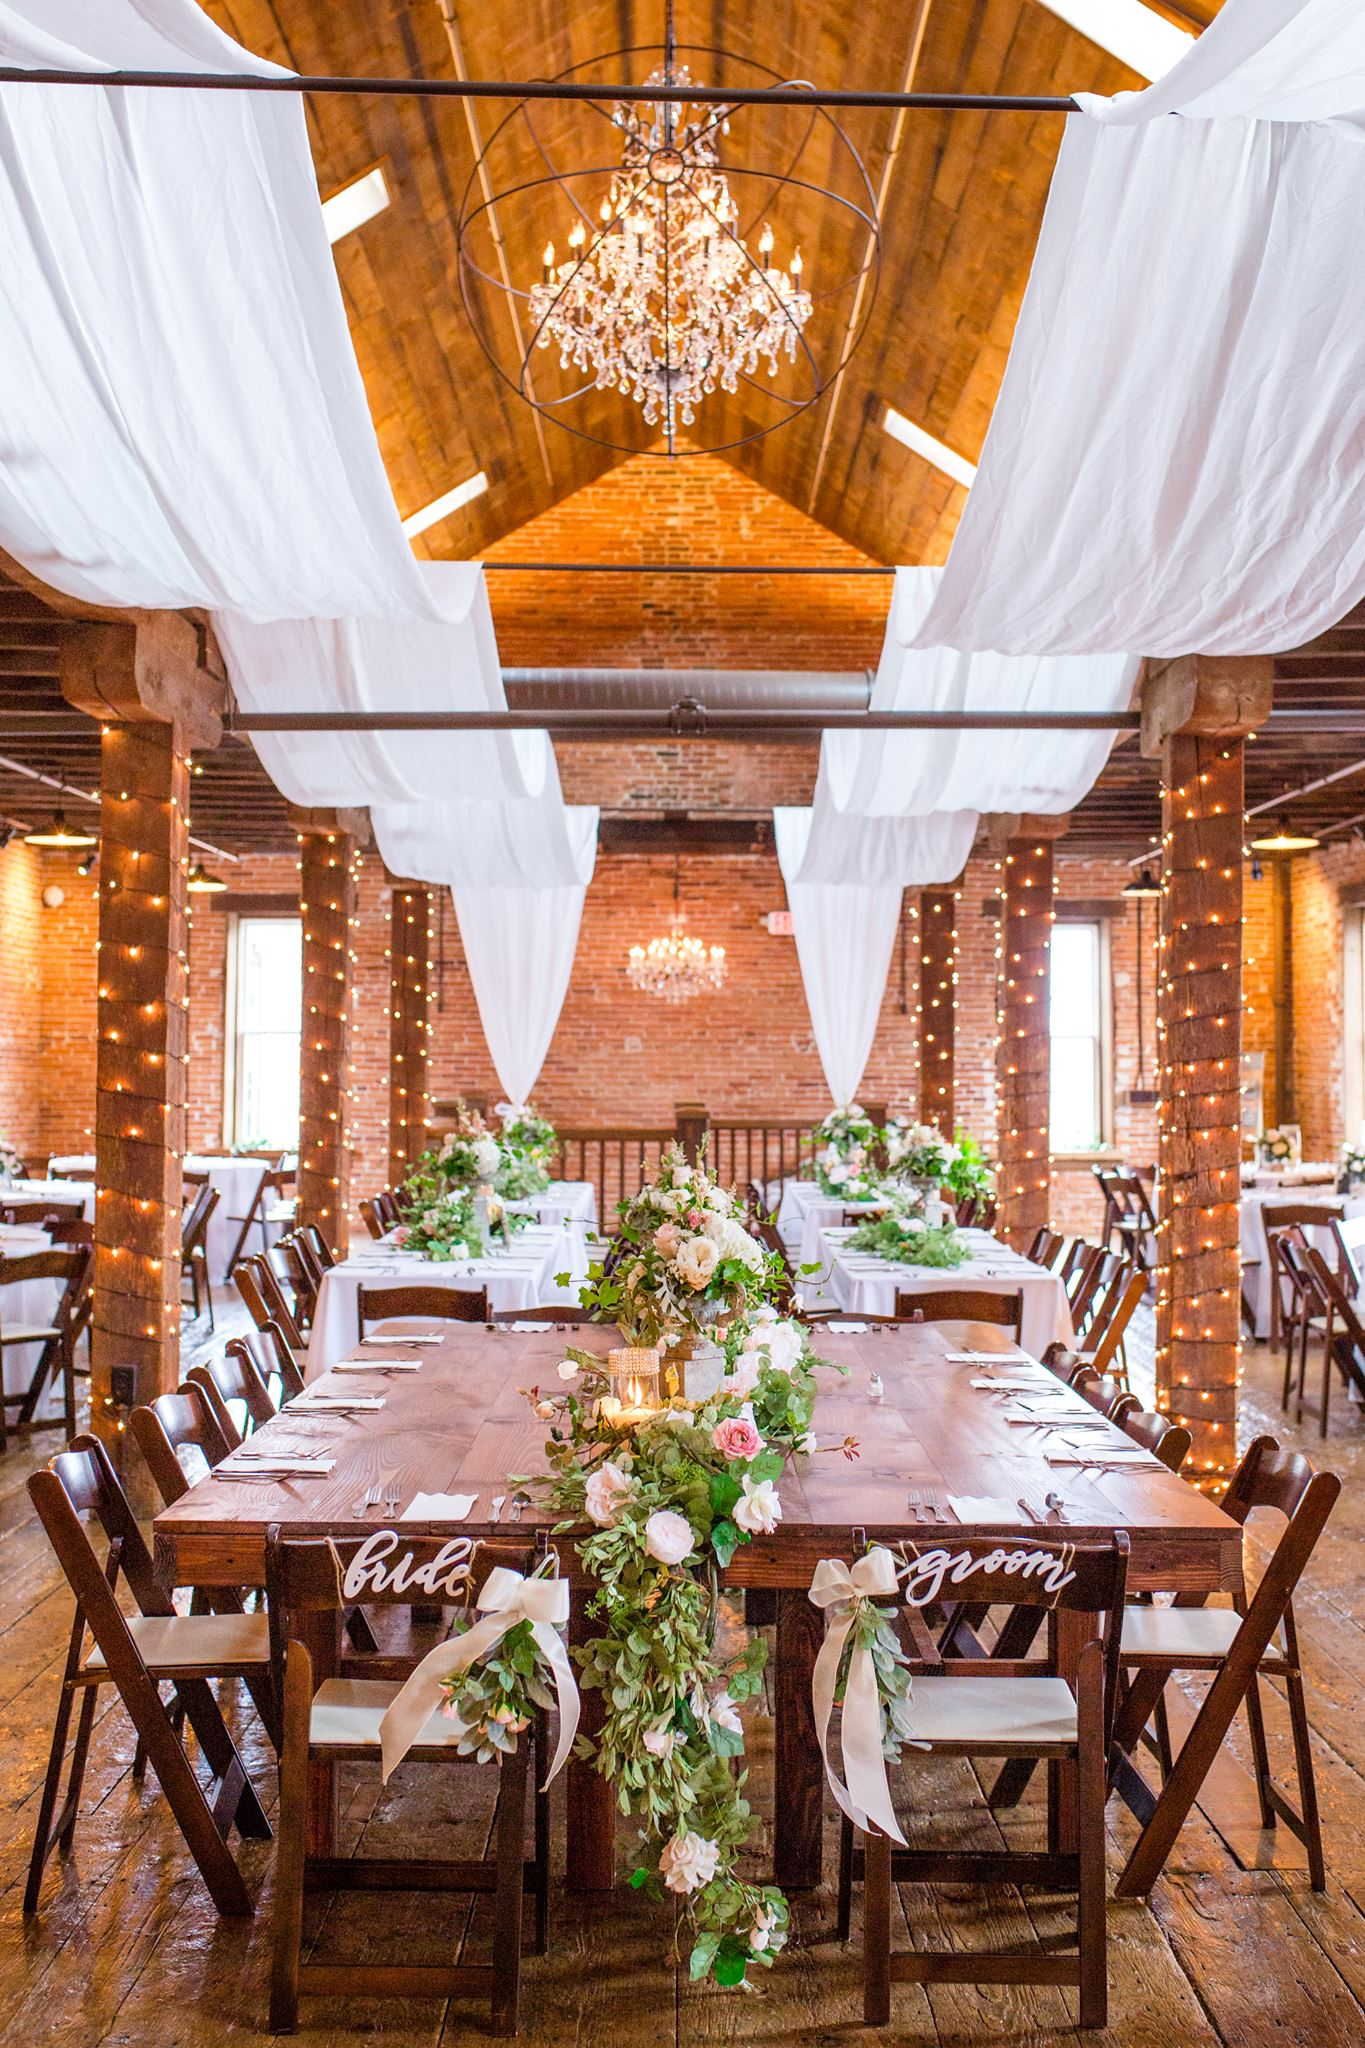 Farm style table bench rentals in lancaster pa de md for Rent cocktail tables near me